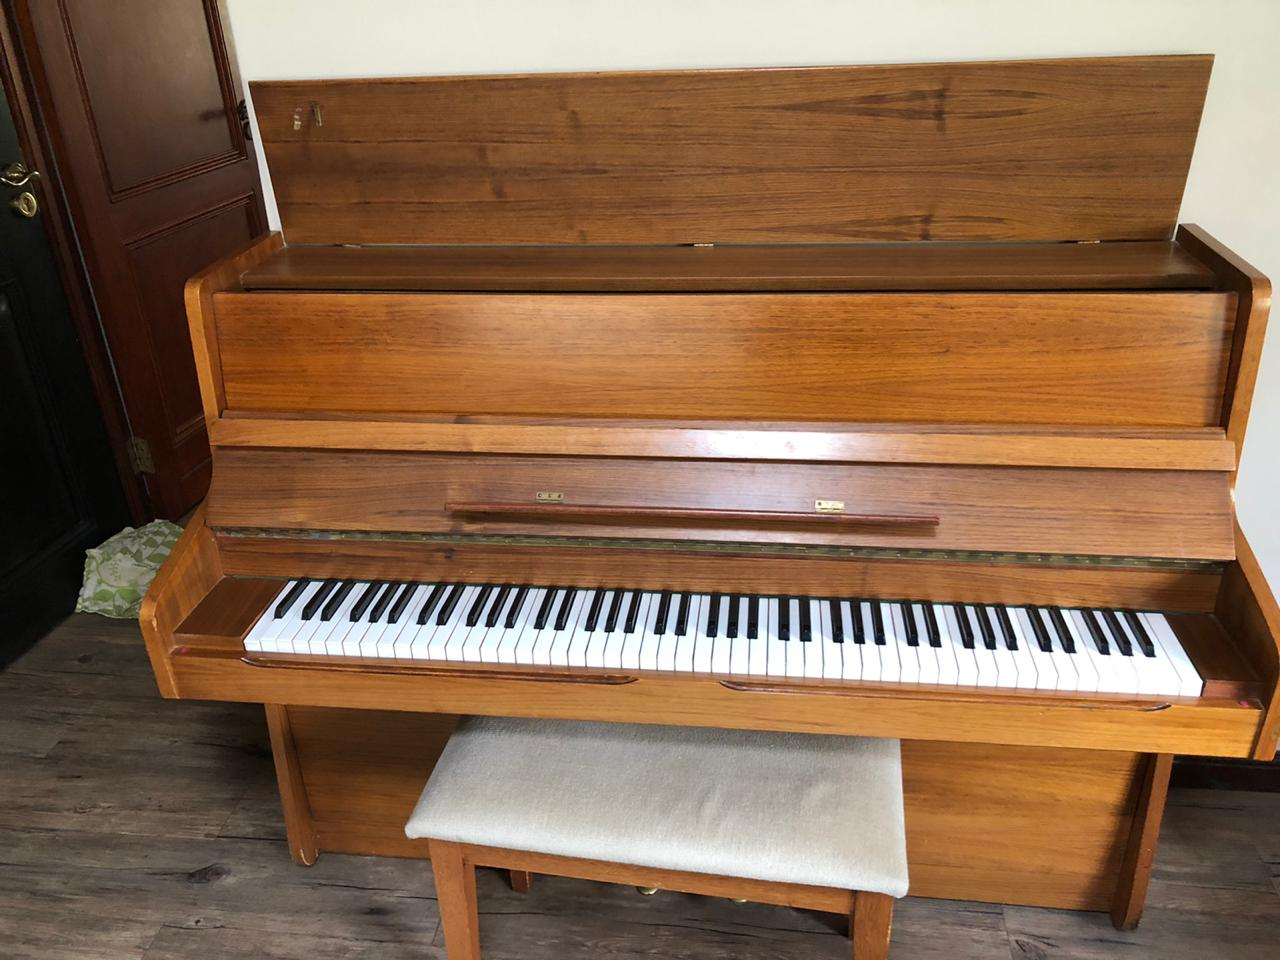 Piano OTTO BACH Upright.